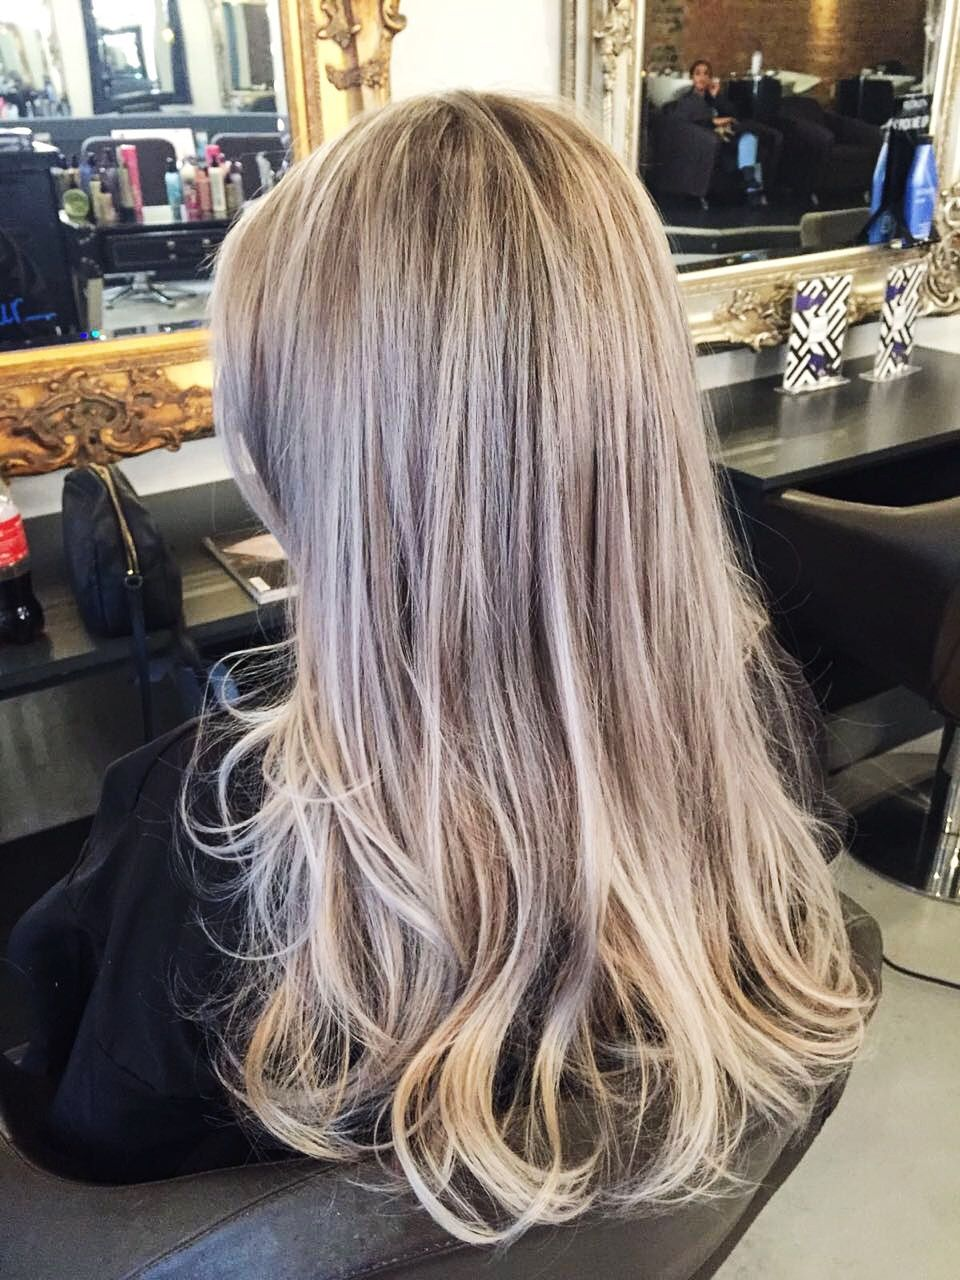 Full Head Blonde Highlights And Billowy Blow Dry London Hairdresser